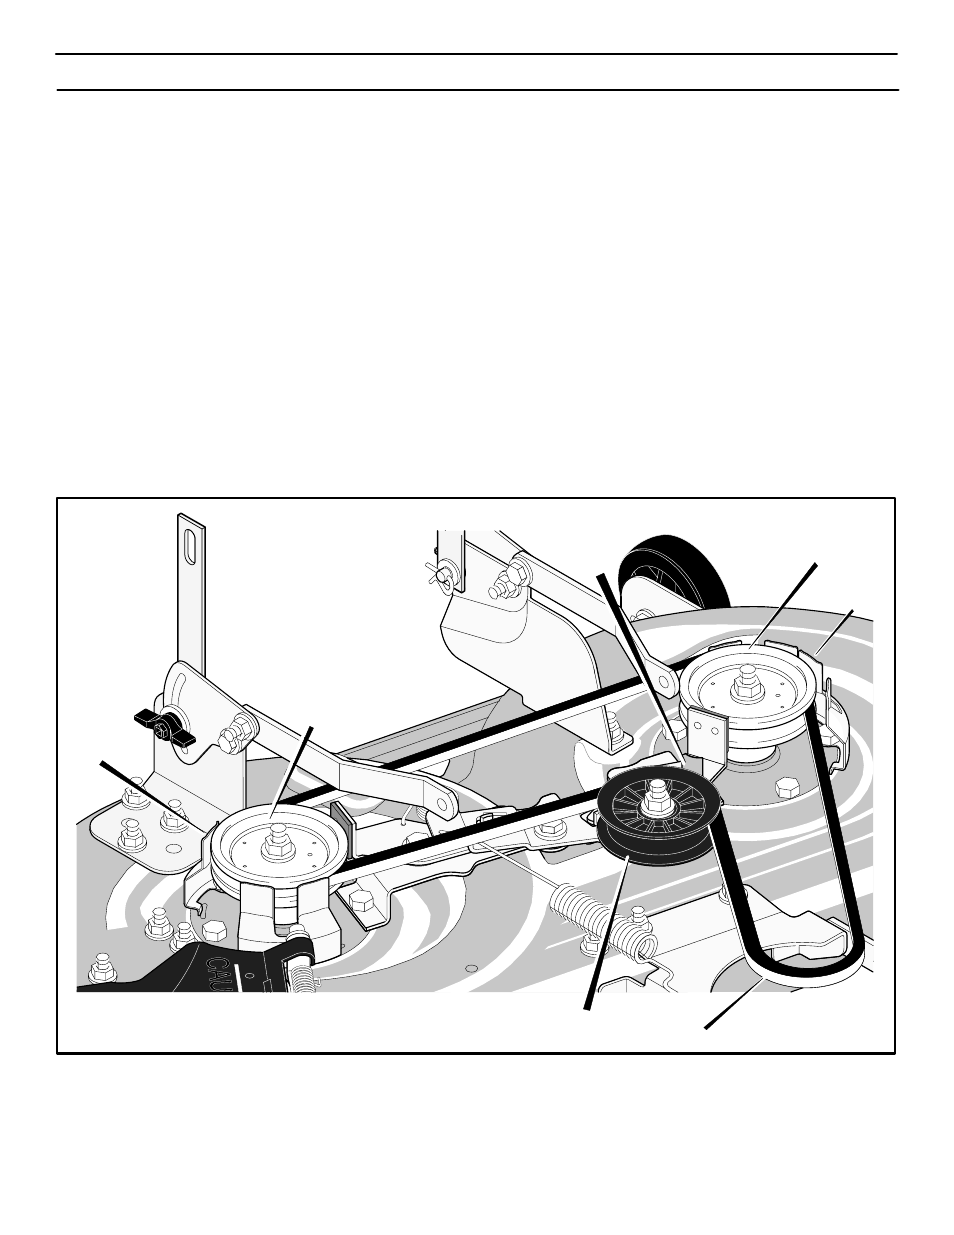 Maintenance, How to replace the mower drive belt | Murray 425303x92B User  Manual | Page